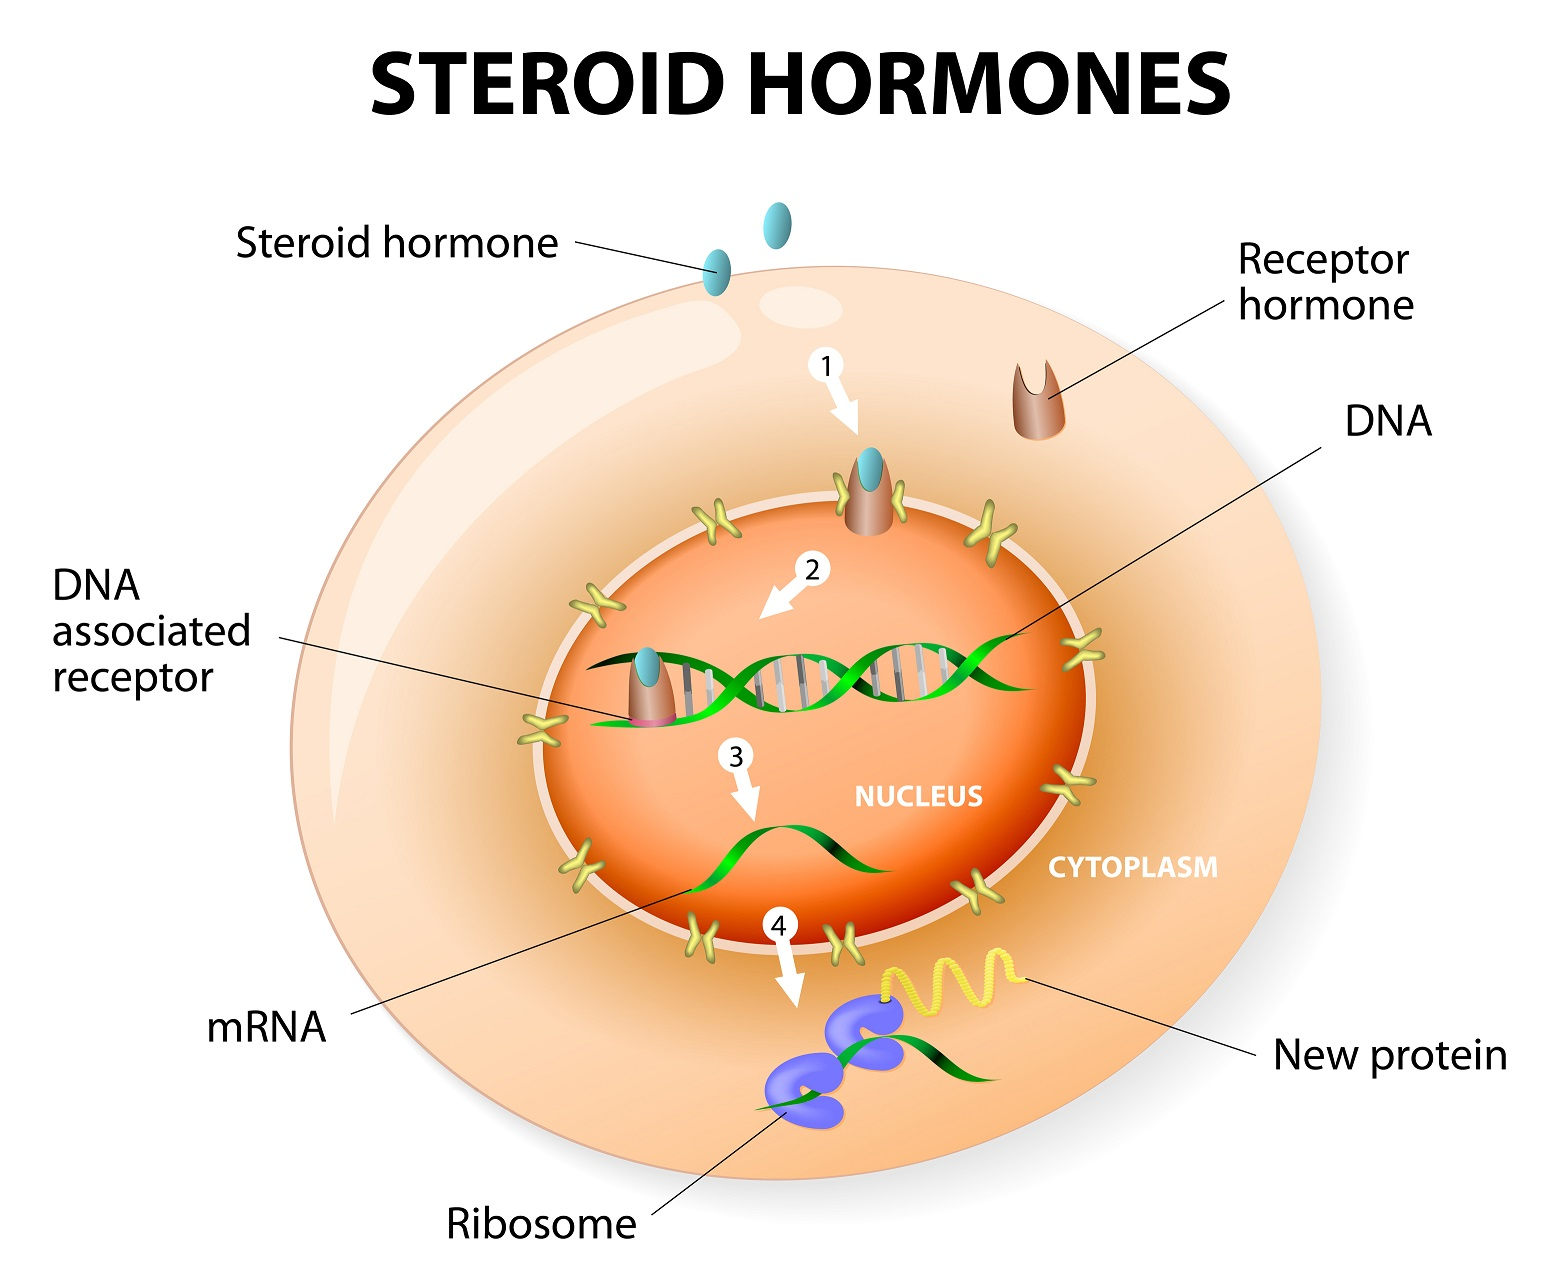 Lipids biology visionlearning other steroids ccuart Image collections